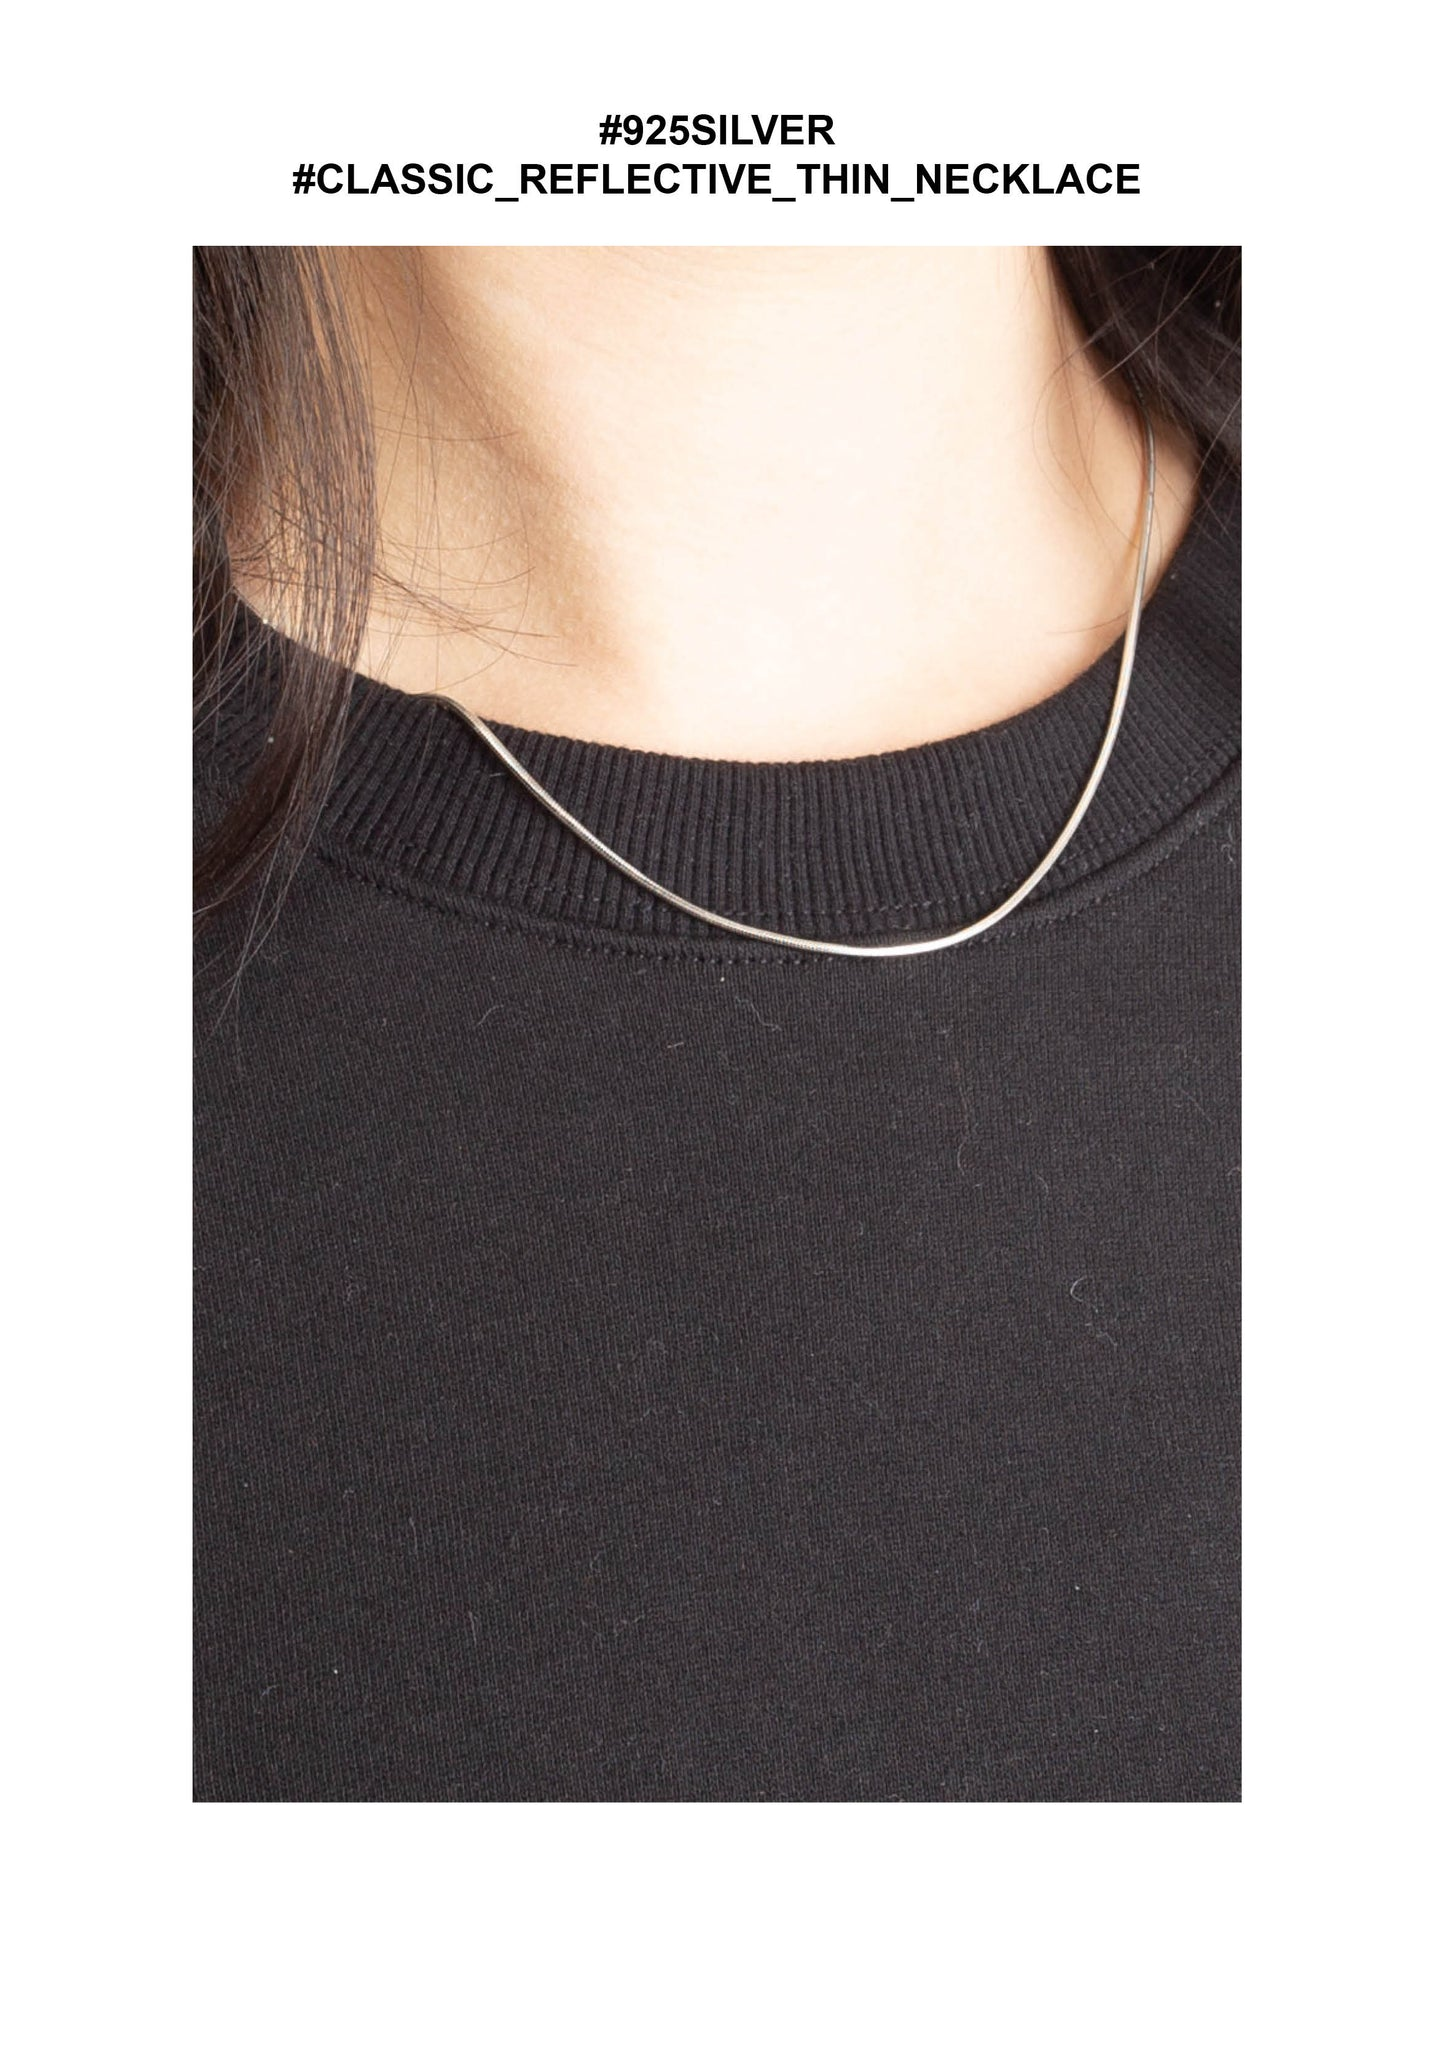 925 Silver Classic Reflective Thin Necklace - whoami